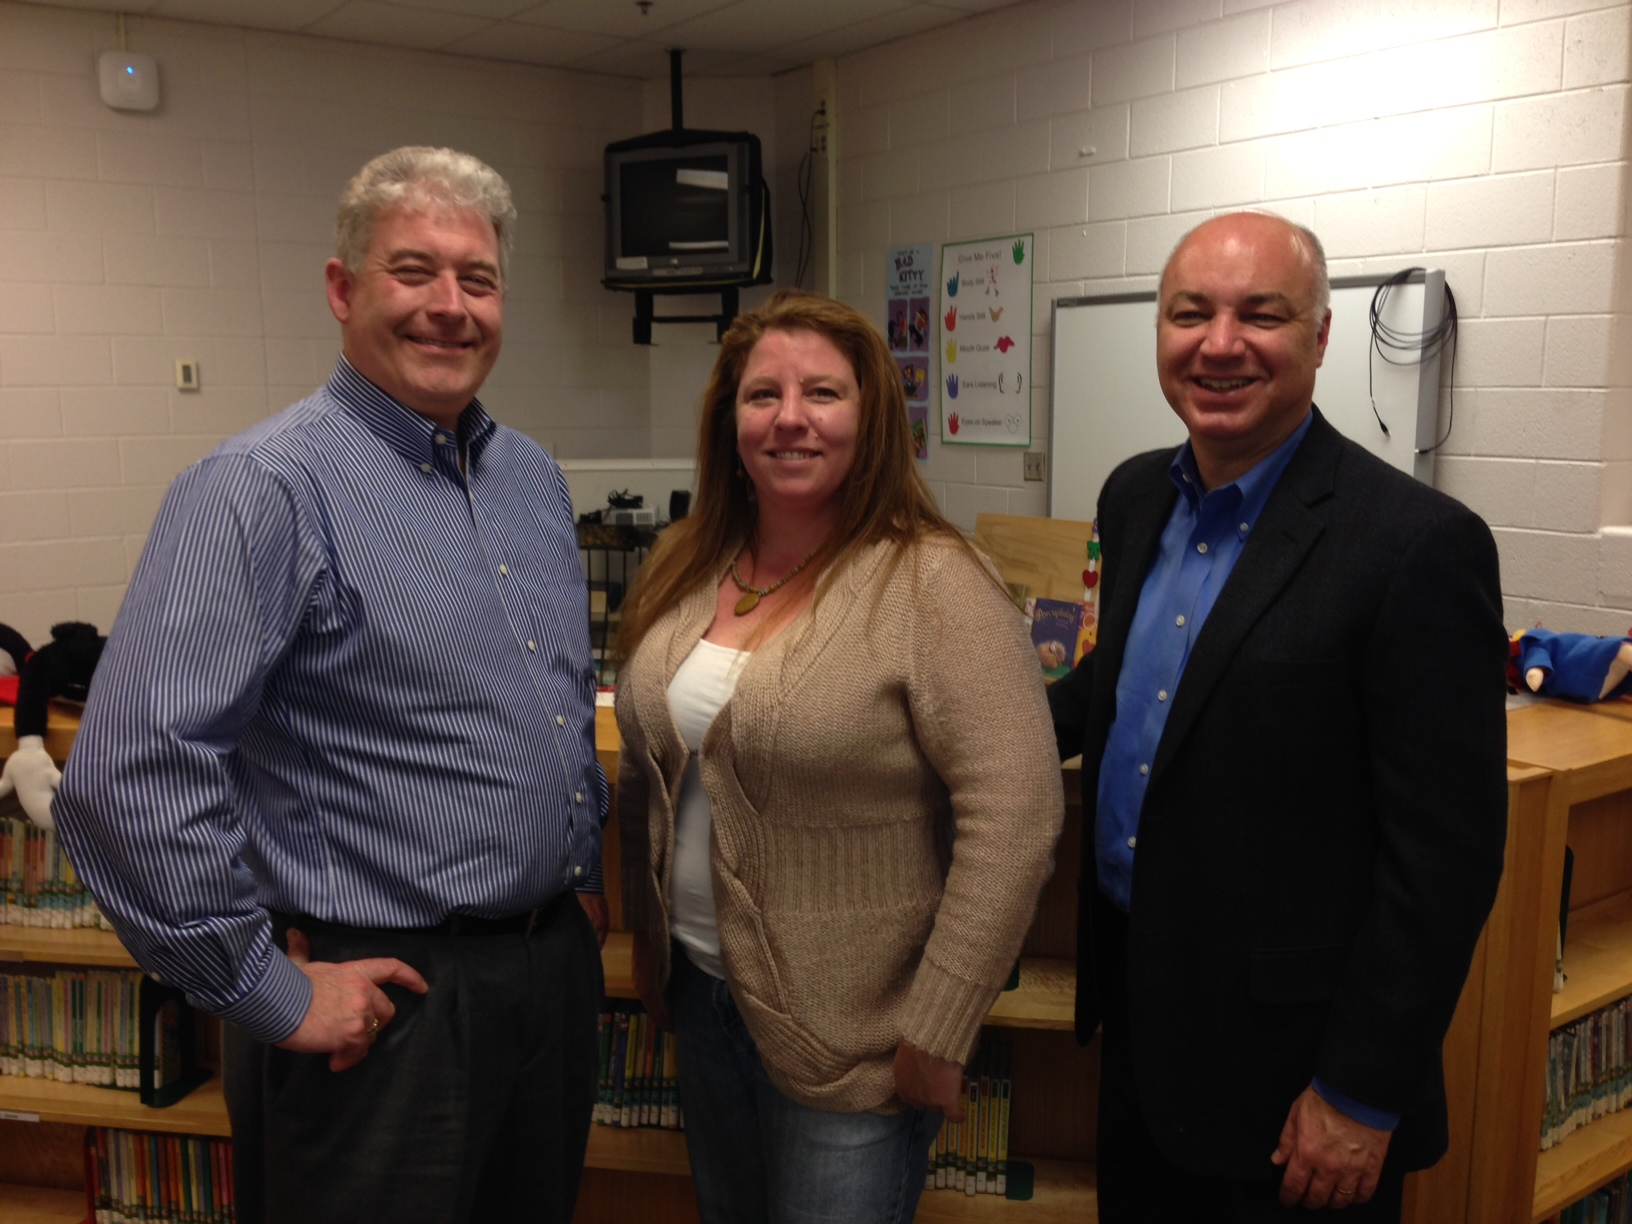 New Board Members (from left) Kevin Corcoran, Kerry Dangerfield, and Peter Bayer.